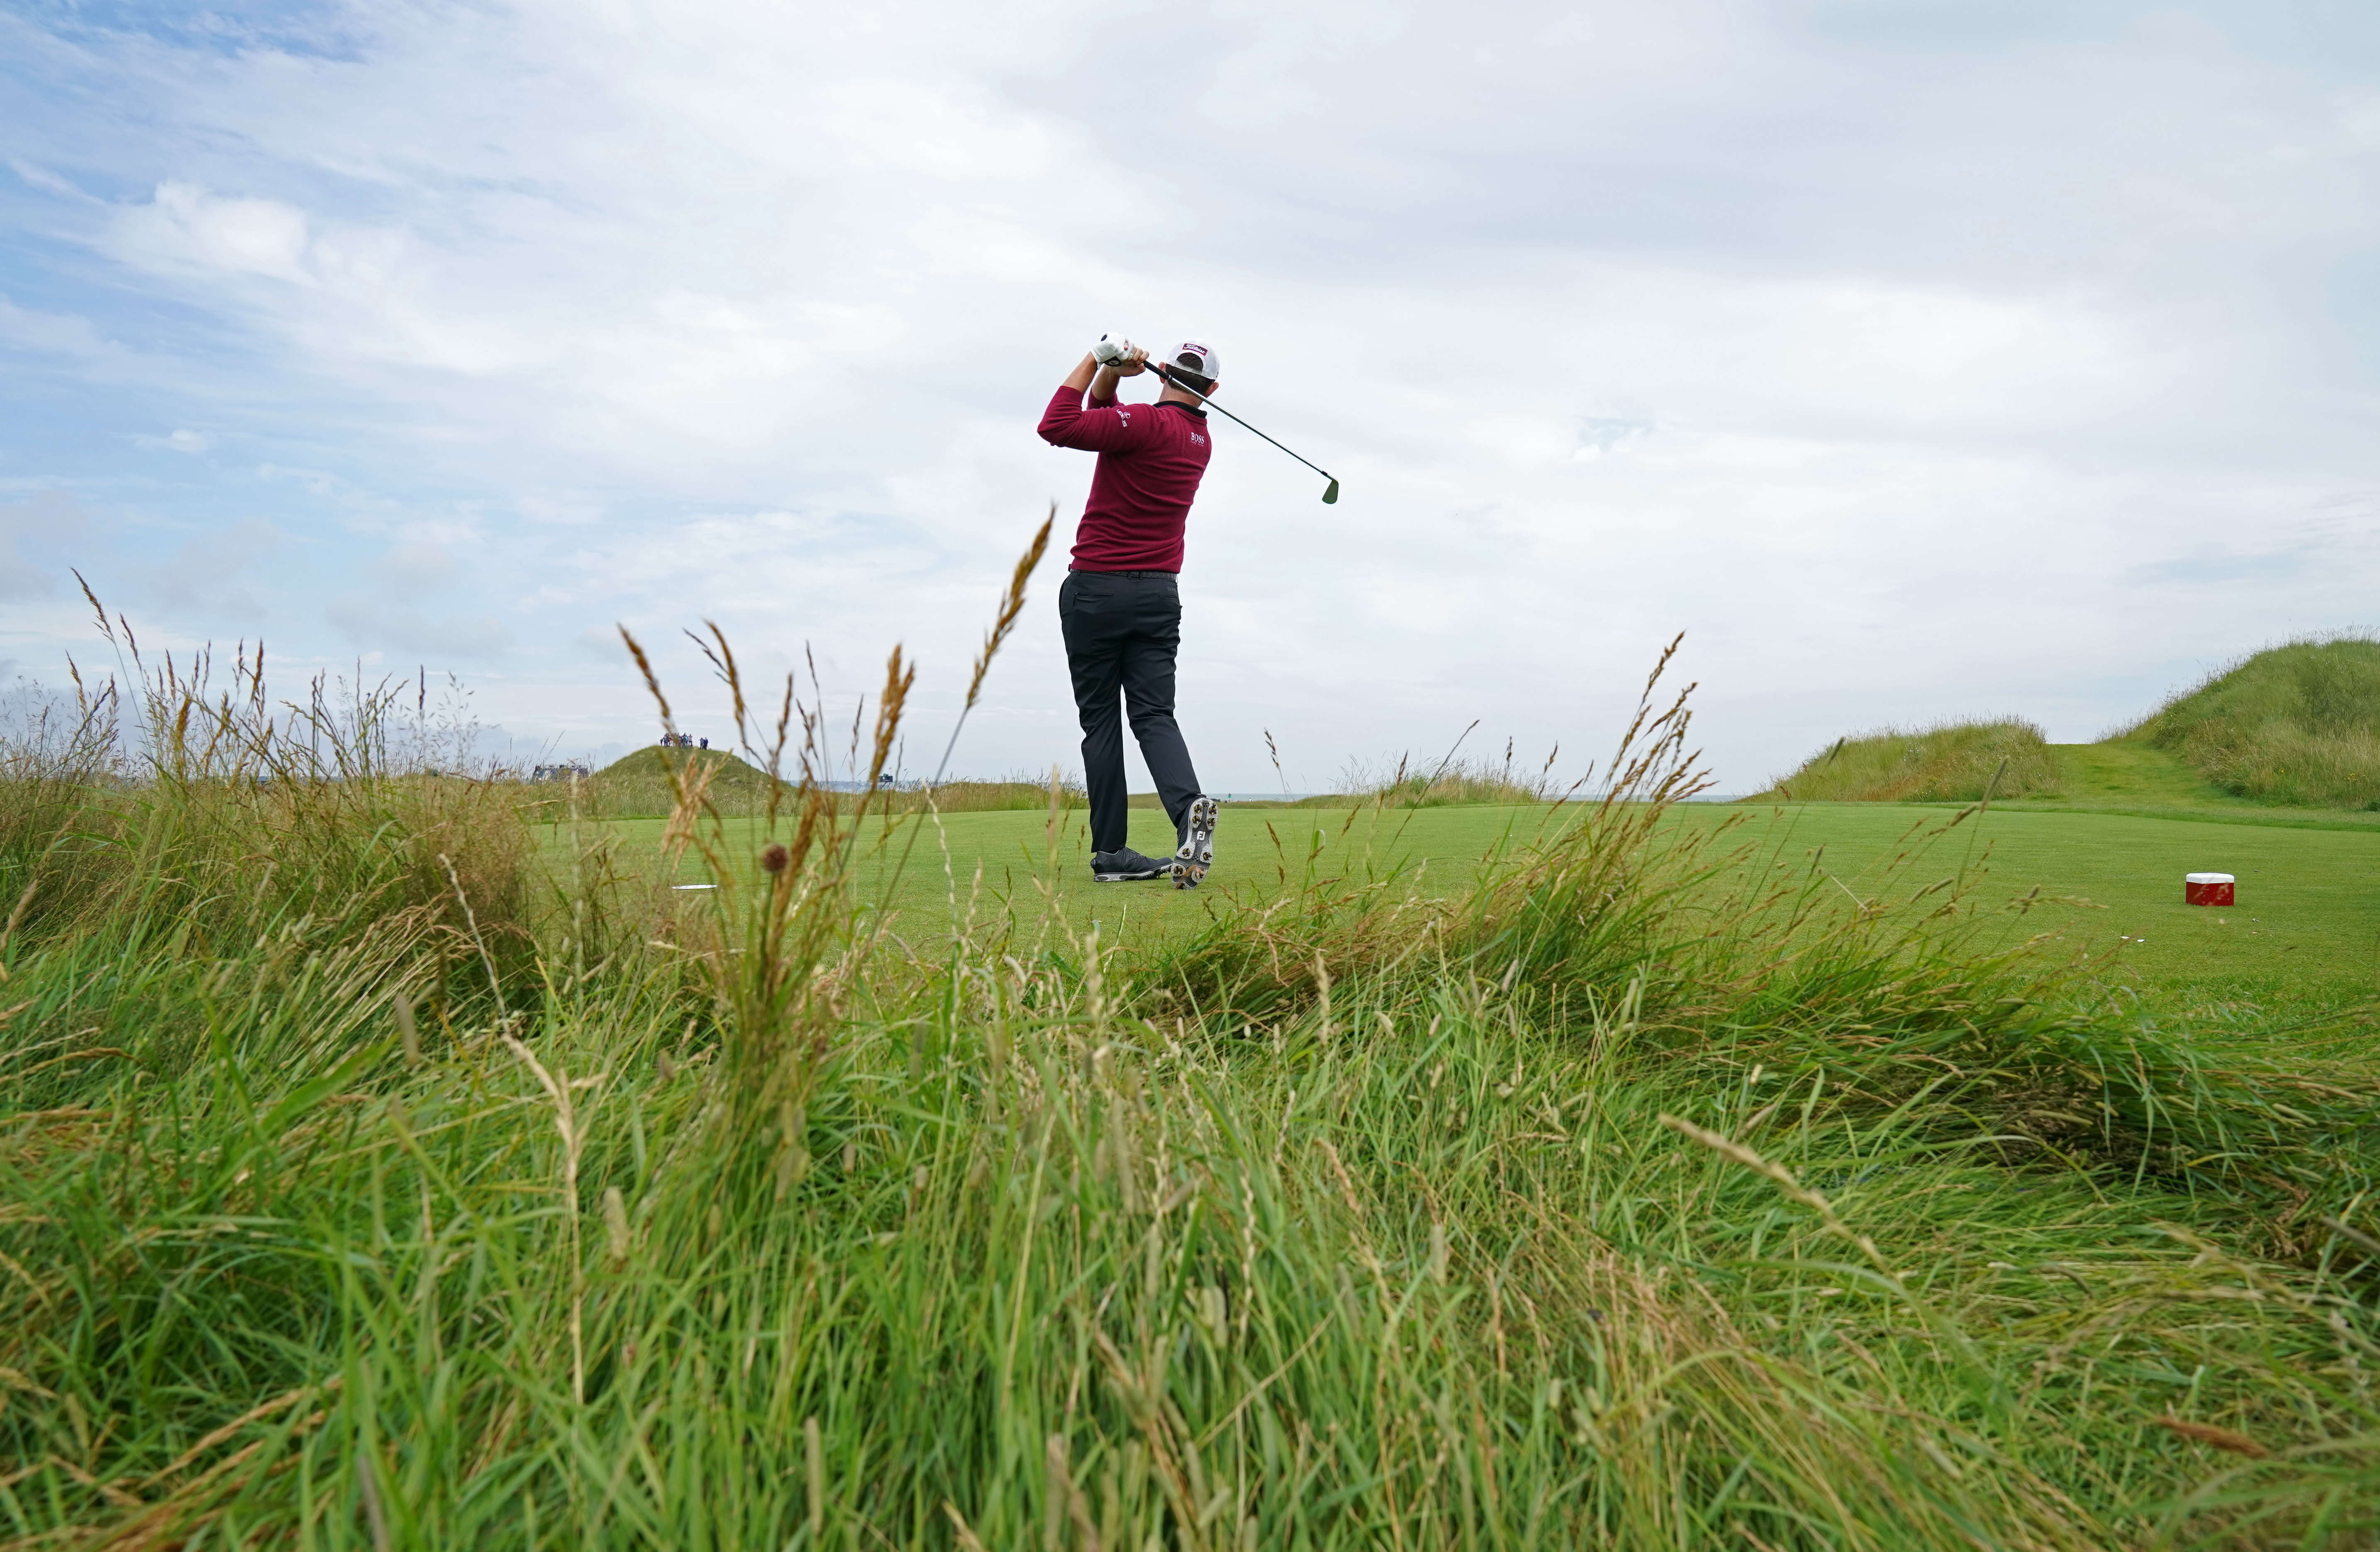 USA's Patrick Cantlay during the preview day at The Royal St George's Golf Club in Sandwich, Kent.